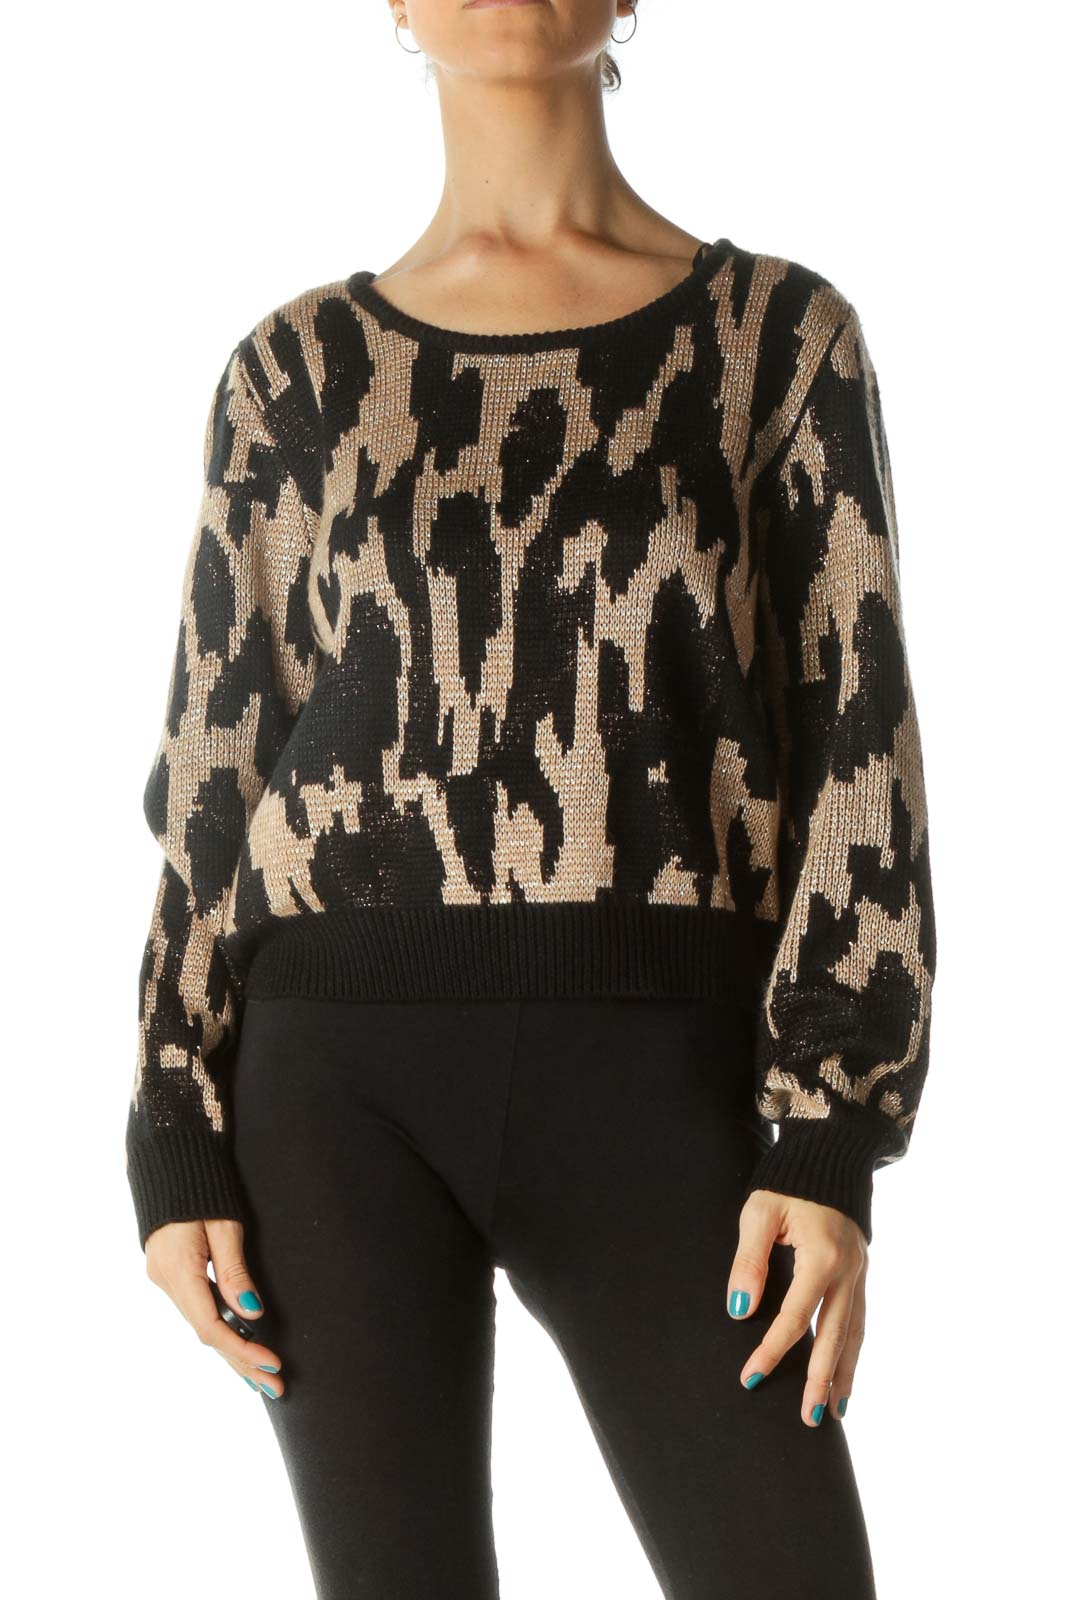 Black and Brown Print Knit Sweater Front